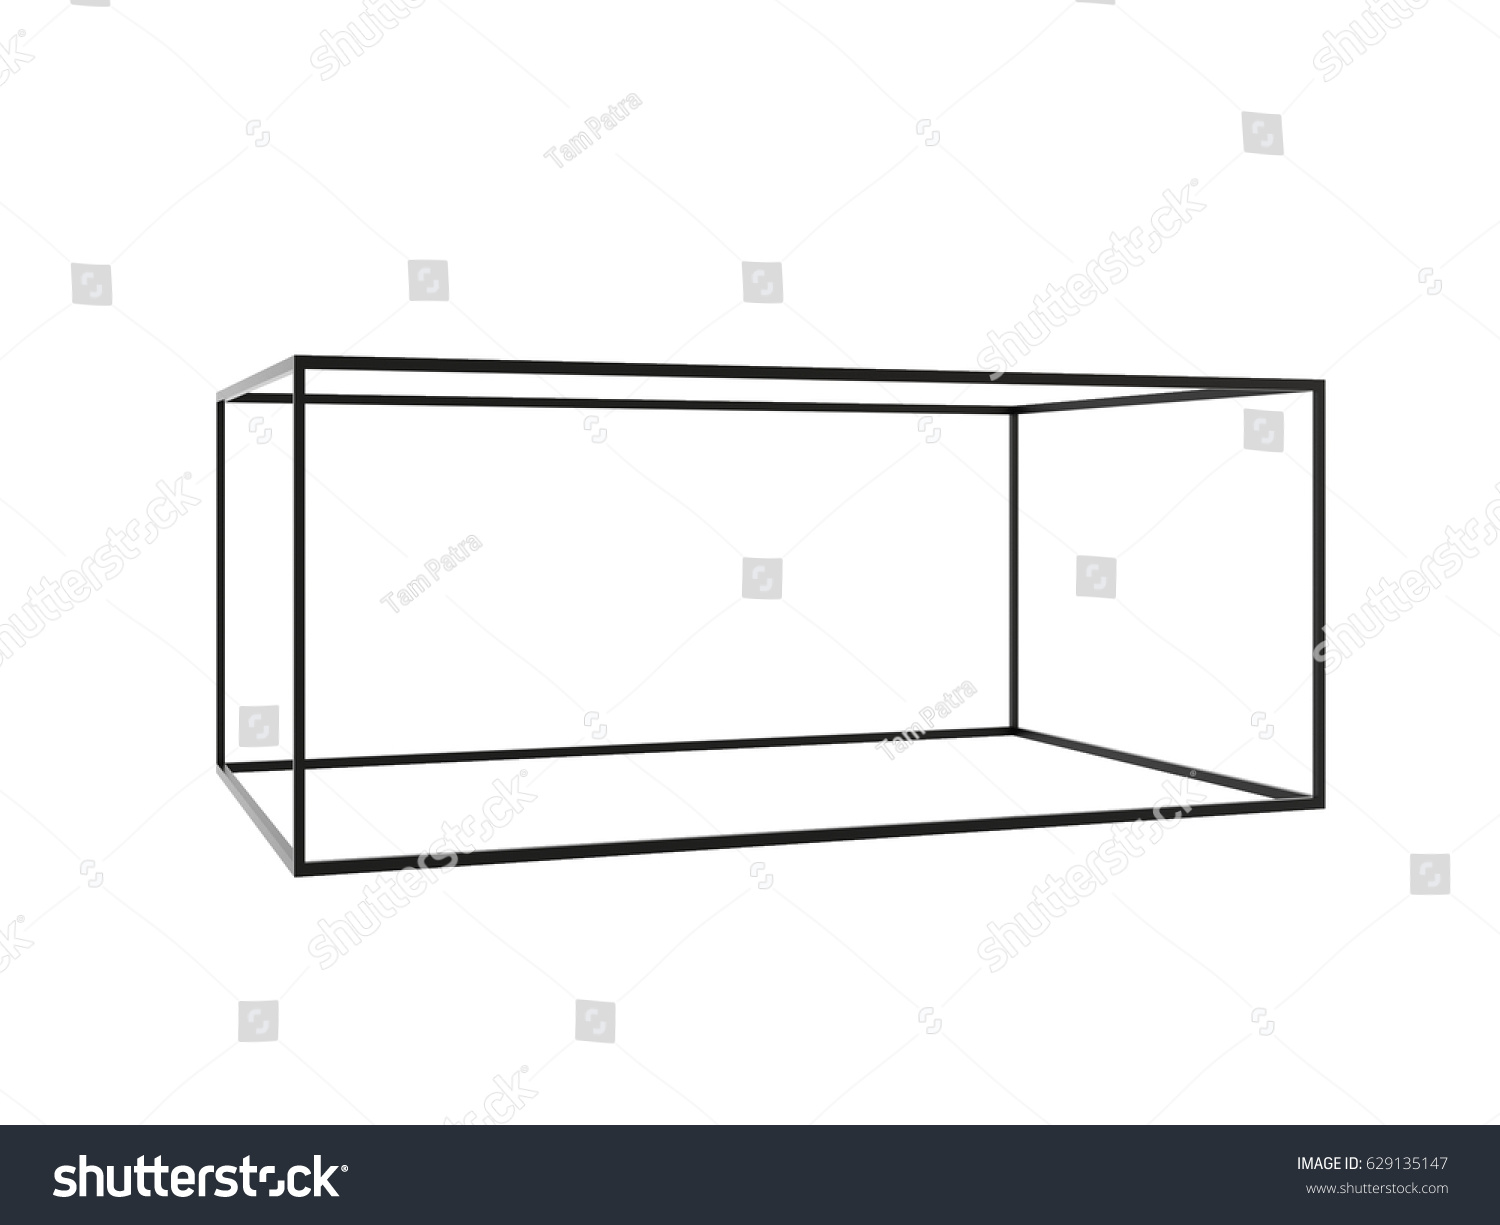 3d black empty box frame isolated on white background,